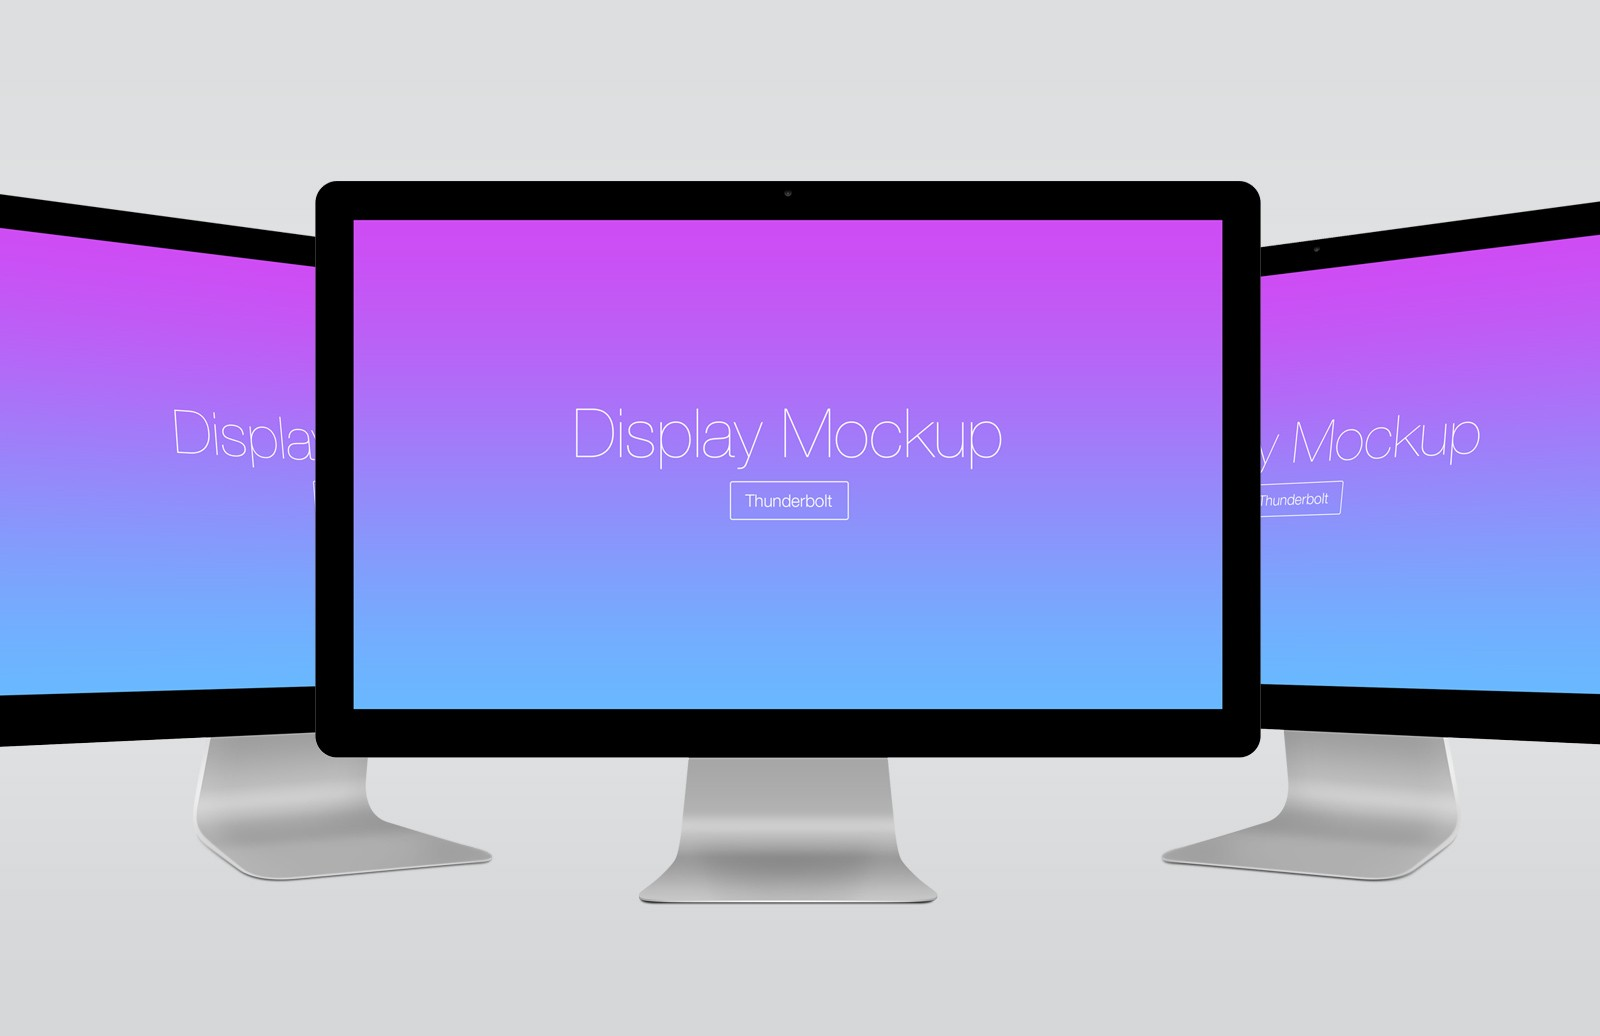 Thunderbolt Display Mockup